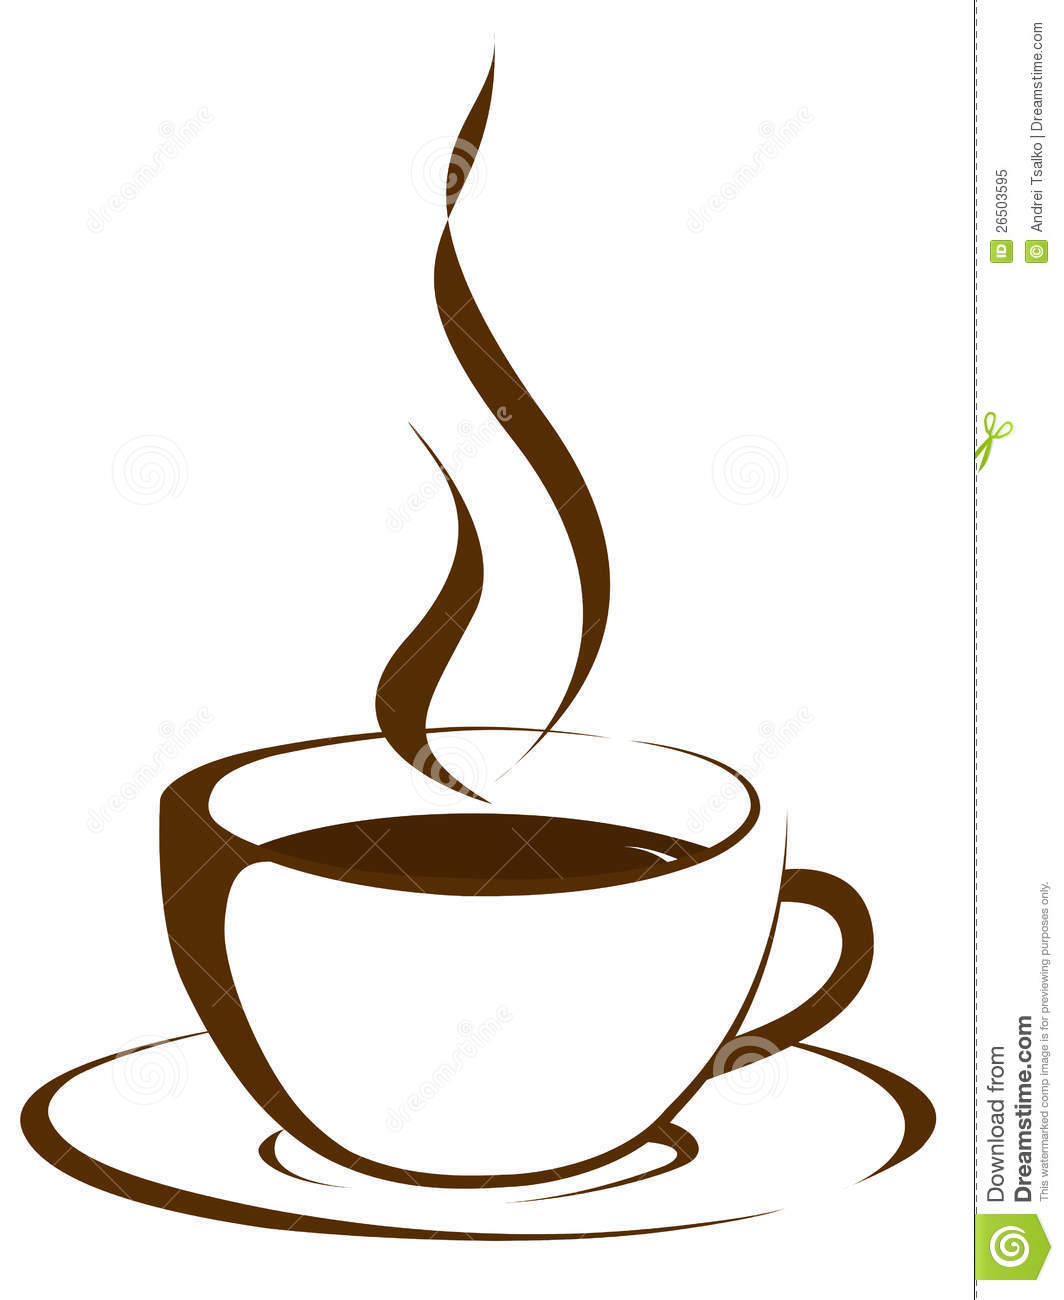 coffee cup clipart clipart suggest coffee mug clip art black and white coffee mug clip art outline